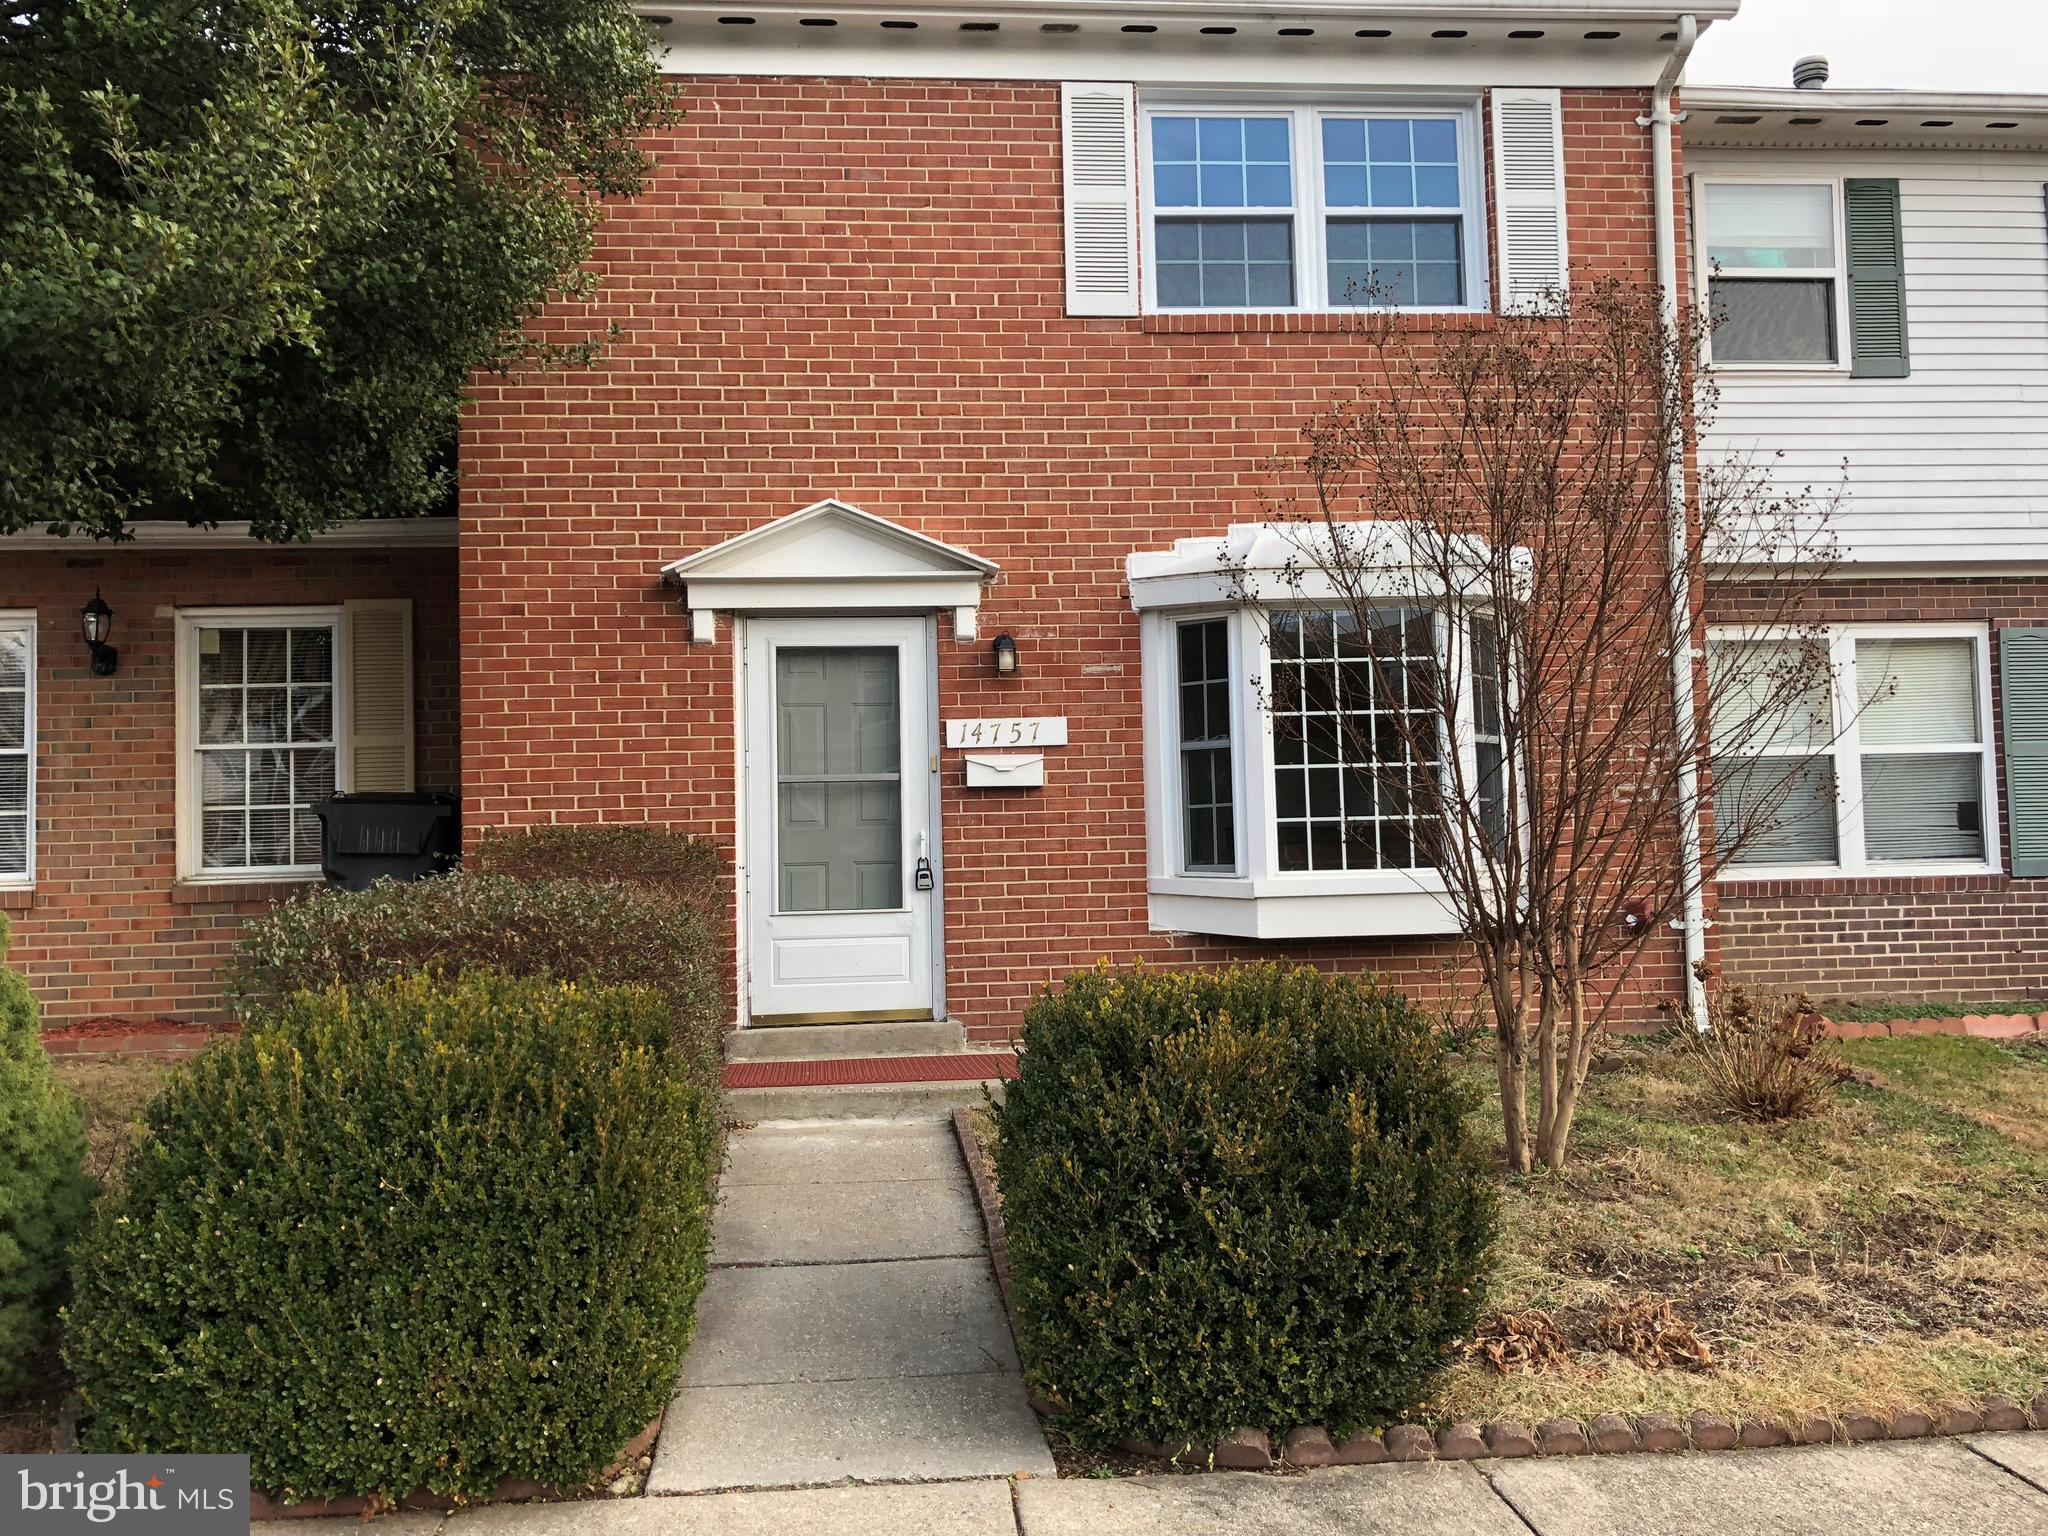 *JUST AS NICE AND FRESH AS A HOUSE CAN BE* COMPLETELY RENOVATED WITH NEWER PAINTINGS, ALL NEWER APPLIANCES INCLUDES AC, HEATING UNIT, LIGHT FIXTURES, STOVE, EXHAUST FAN, DISHWASHER AND REFRIGERATOR, NEWER CARPET, MBR W/WALK-IN CLOSET. 3 BEDROOMS, 2 FULL AND ONE HALF BATH. SEEING IS BELIEVING. * ALL THIS and A SHED, too!**Close to Shops, VRE, Golf Course, etc. GREAT COMMUTE TO PENTAGON, QUANTICO, DC & NOVA**